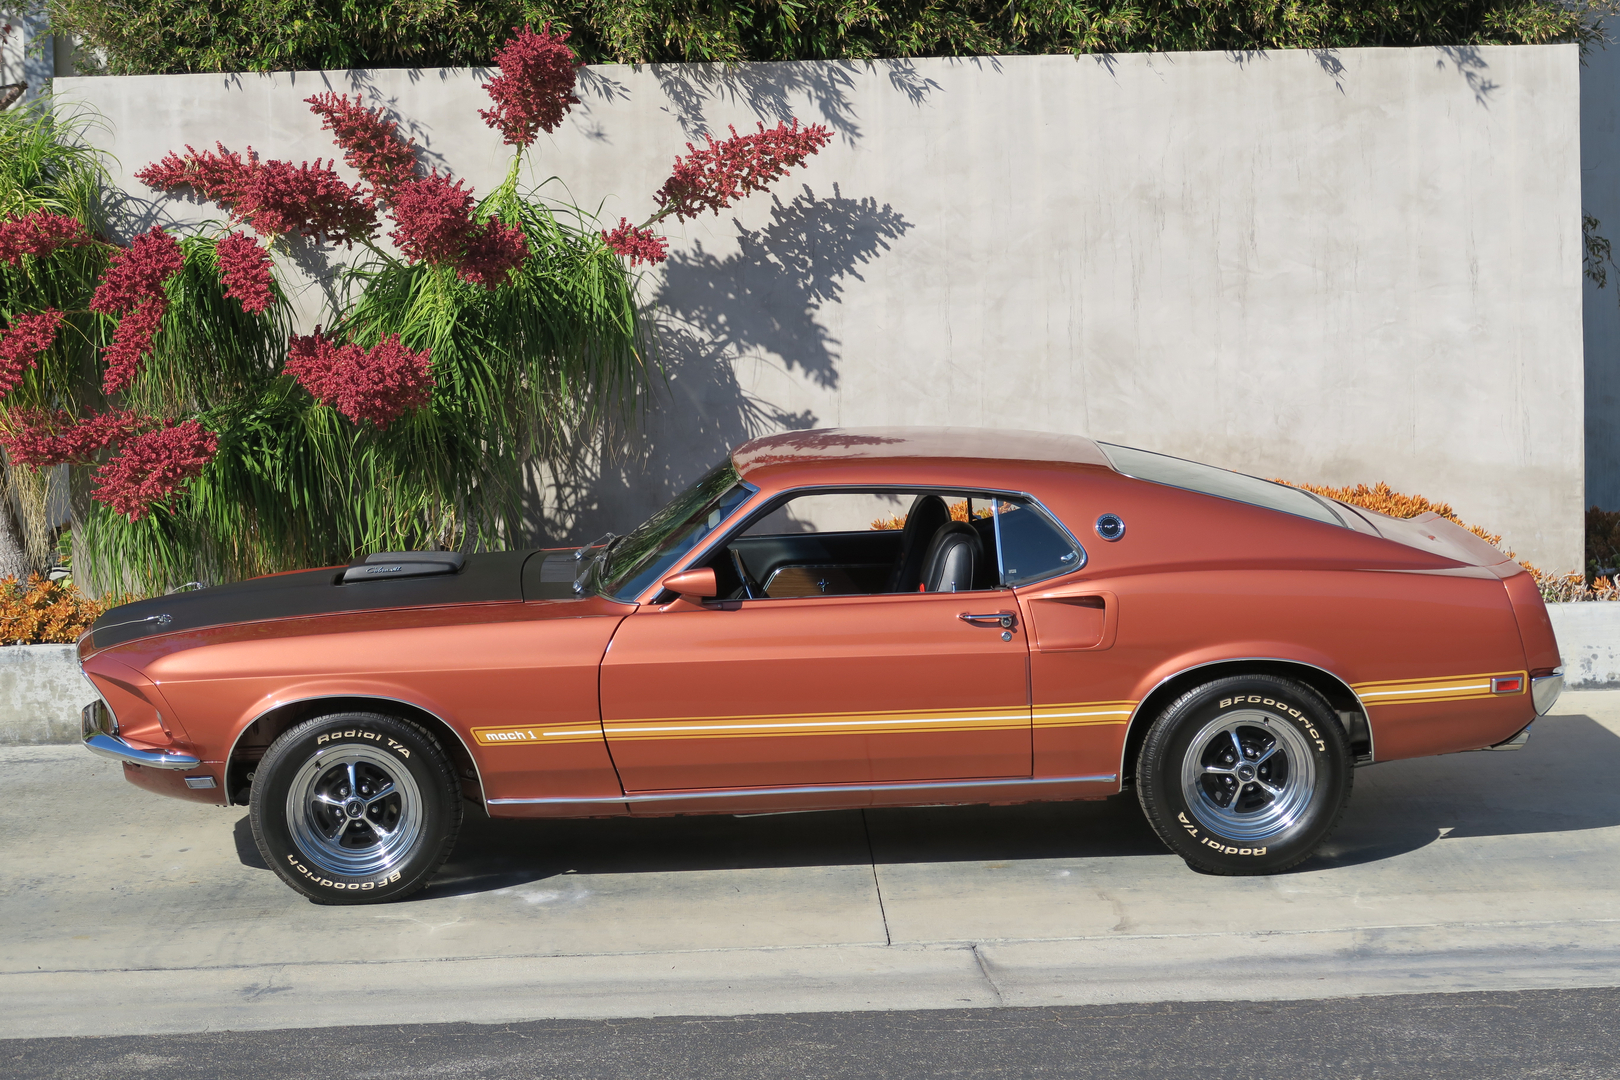 1969 Ford Mustang Mach 1 428 Super Cobra Jet